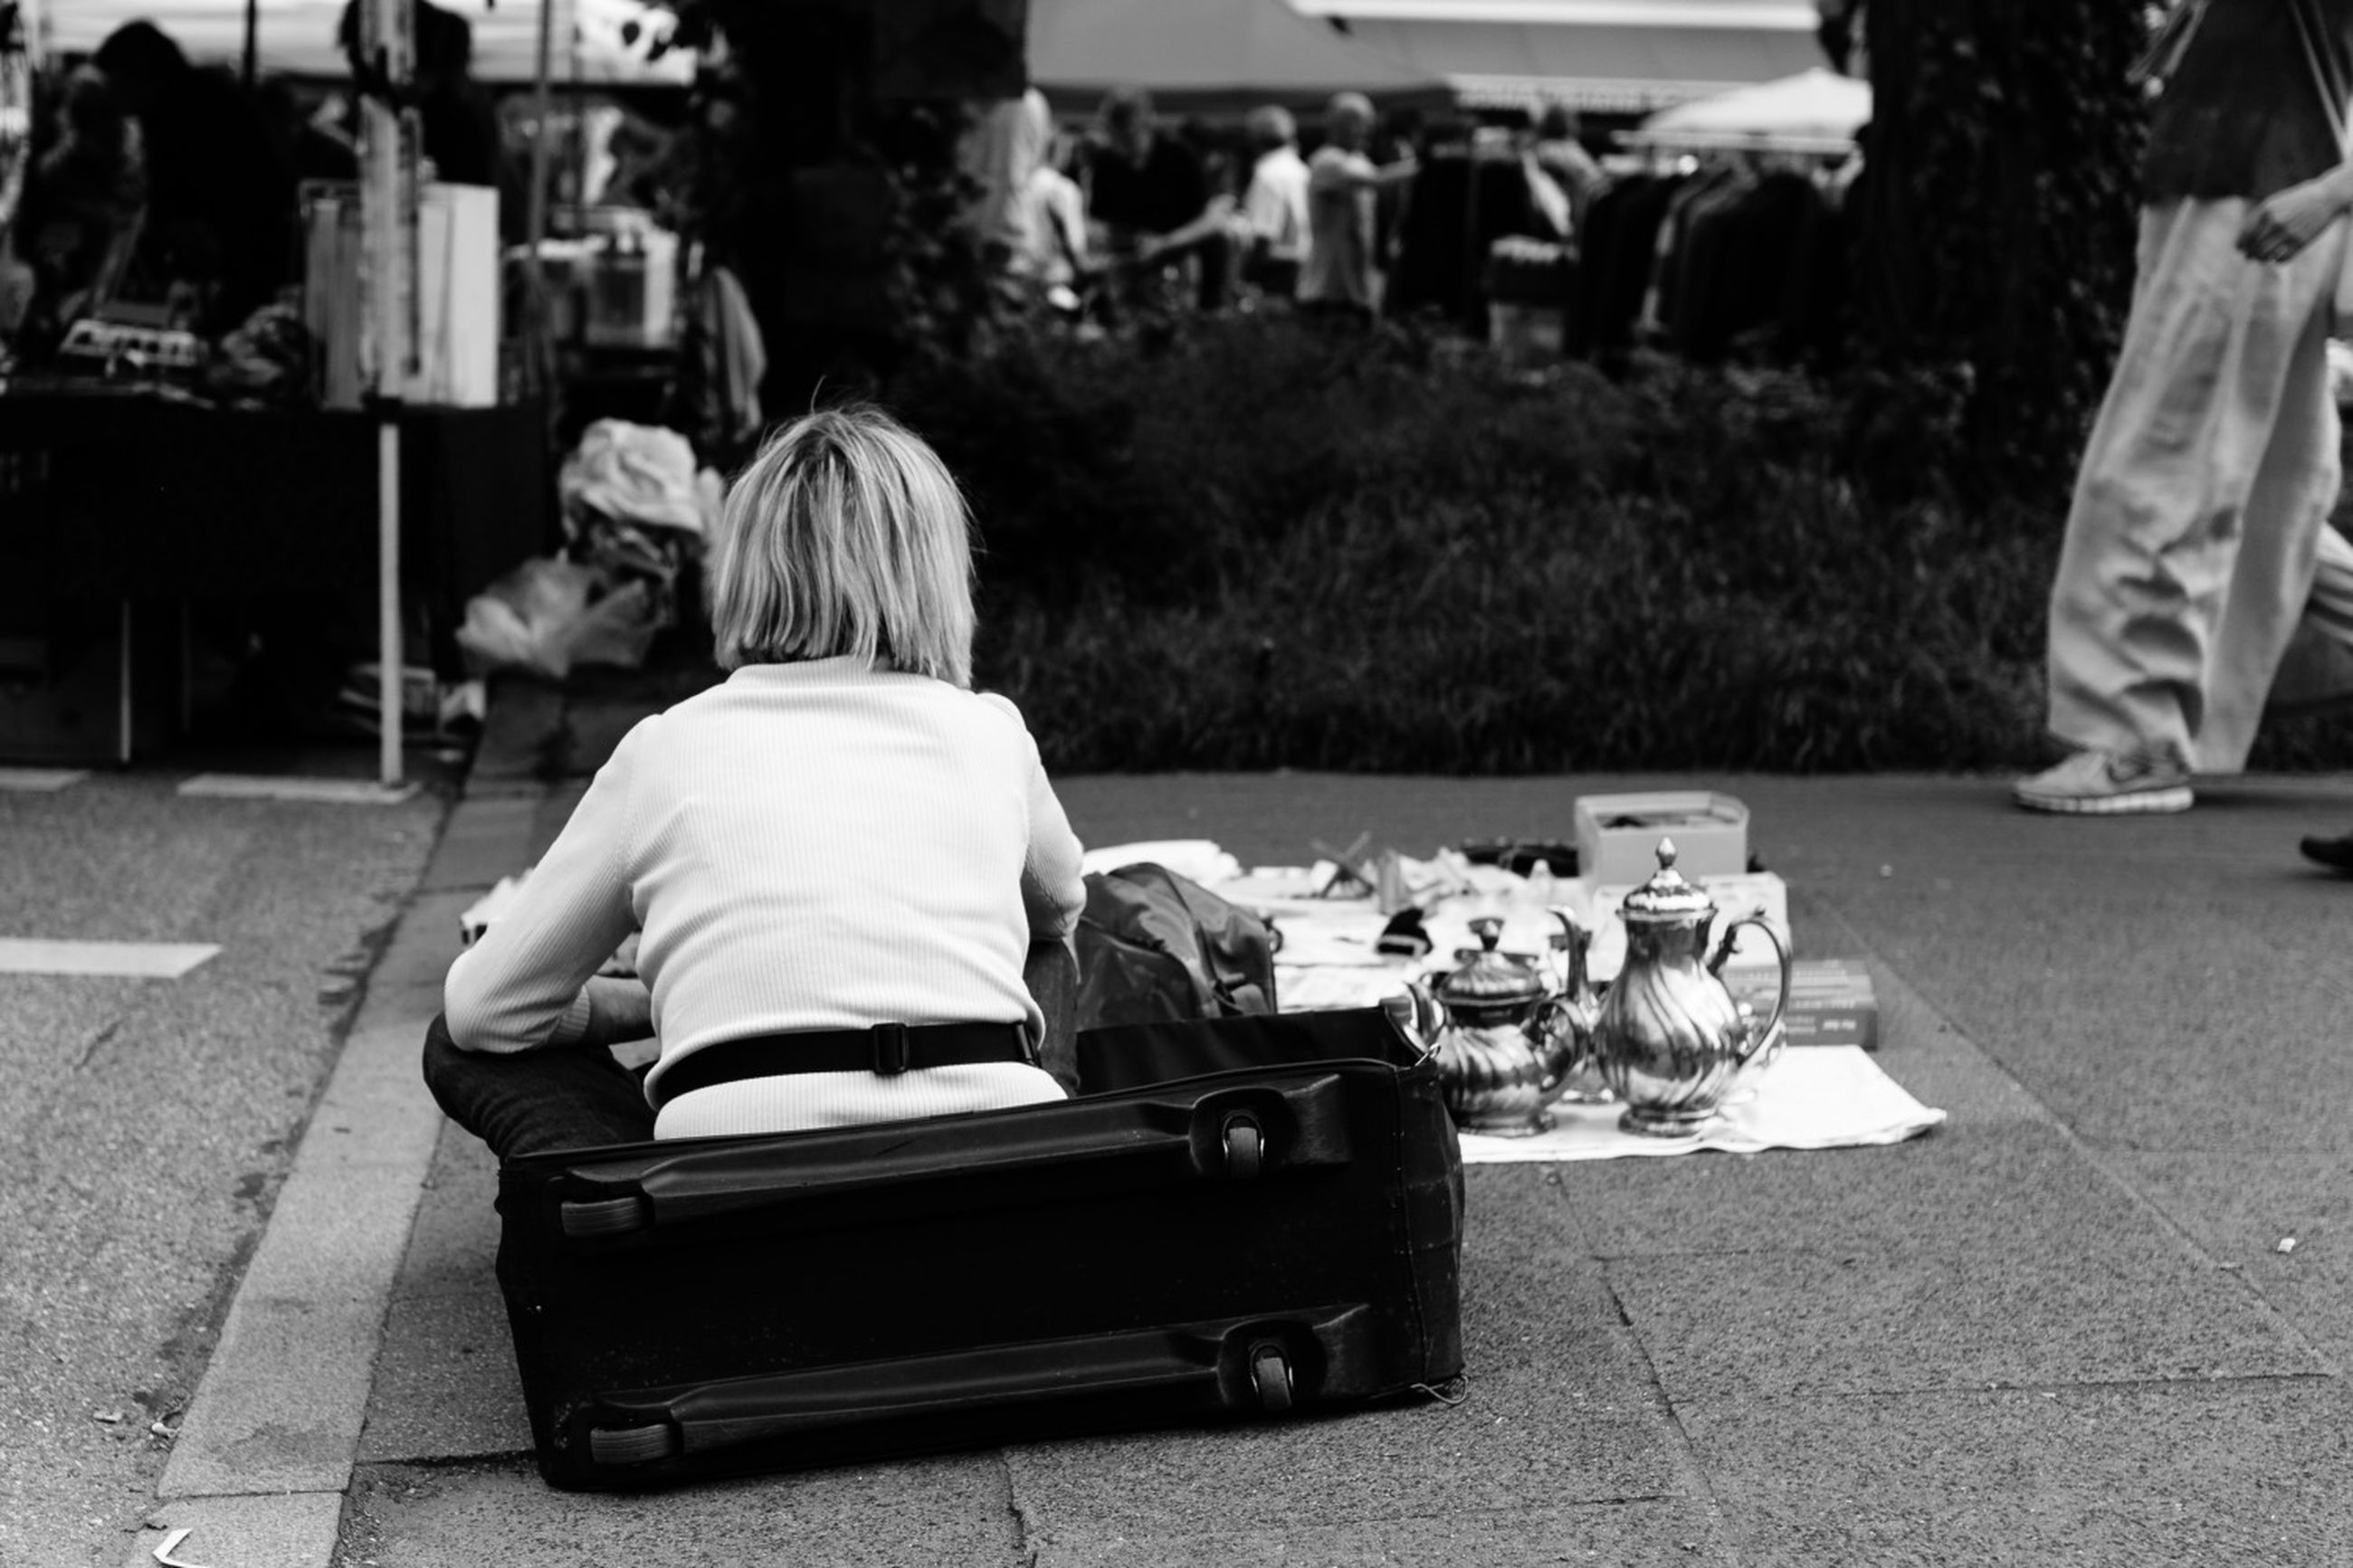 sitting, lifestyles, chair, casual clothing, leisure activity, table, relaxation, men, person, full length, rear view, incidental people, bench, sidewalk cafe, day, seat, restaurant